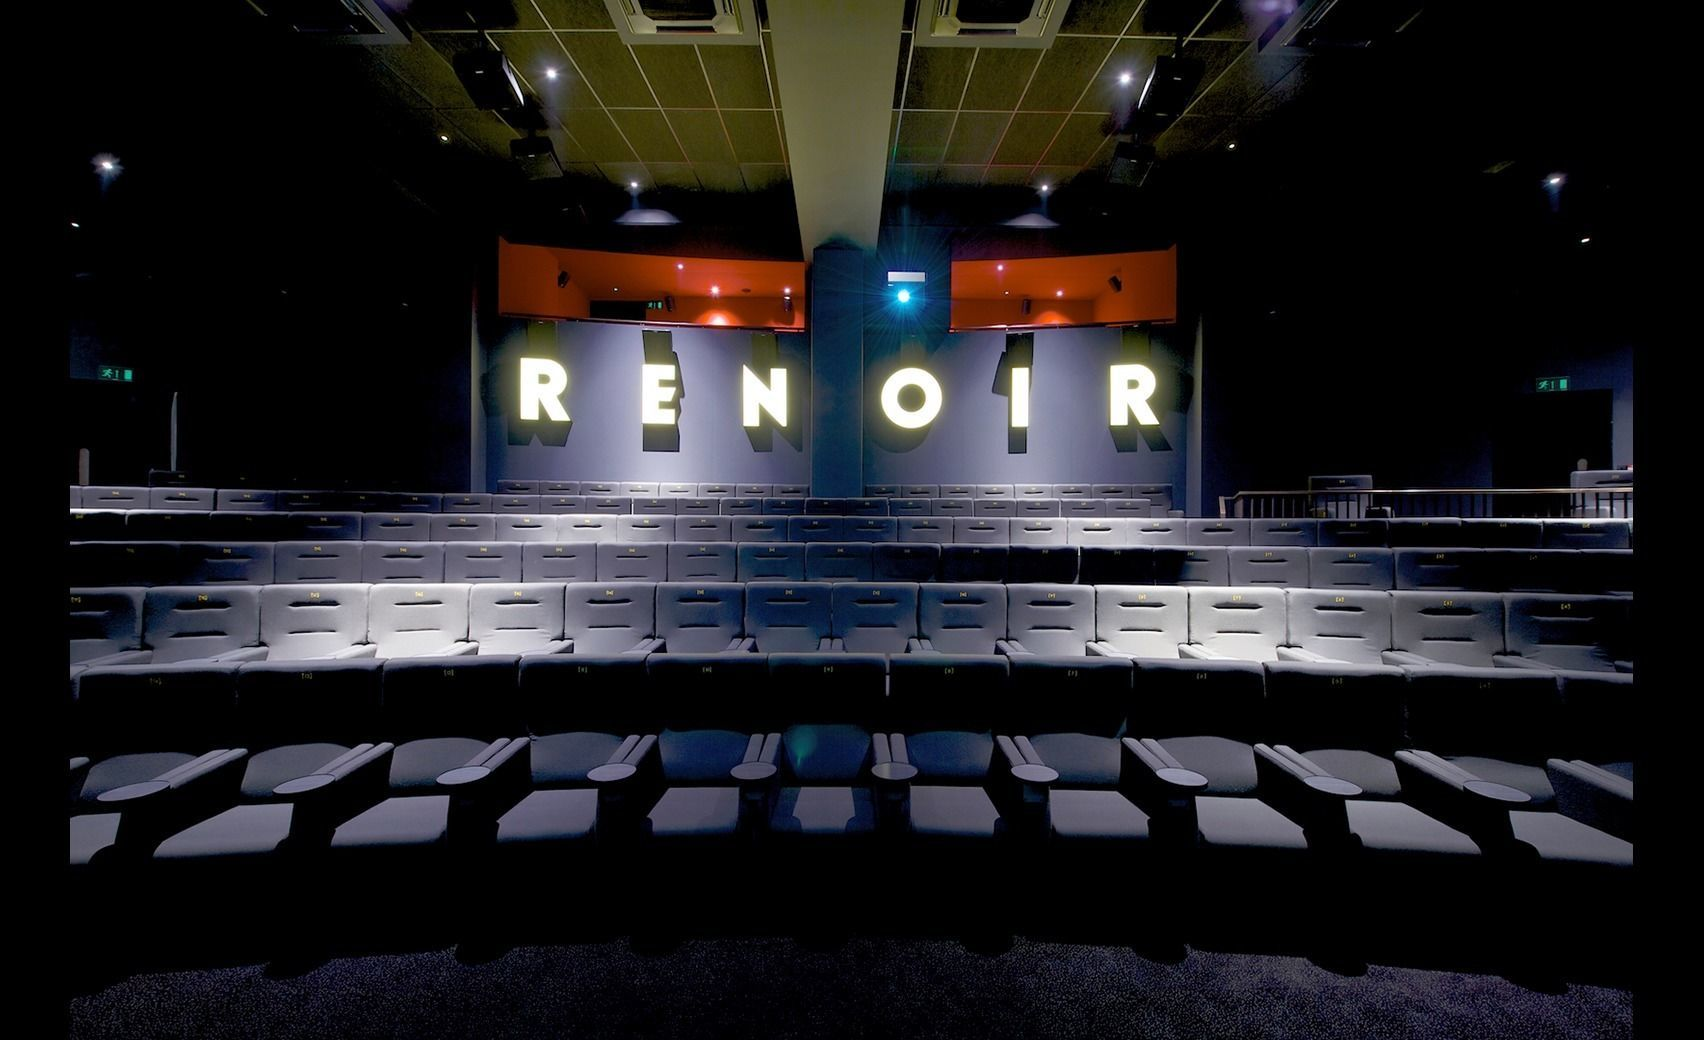 A cinema room with the words RENOIR written on the back wall